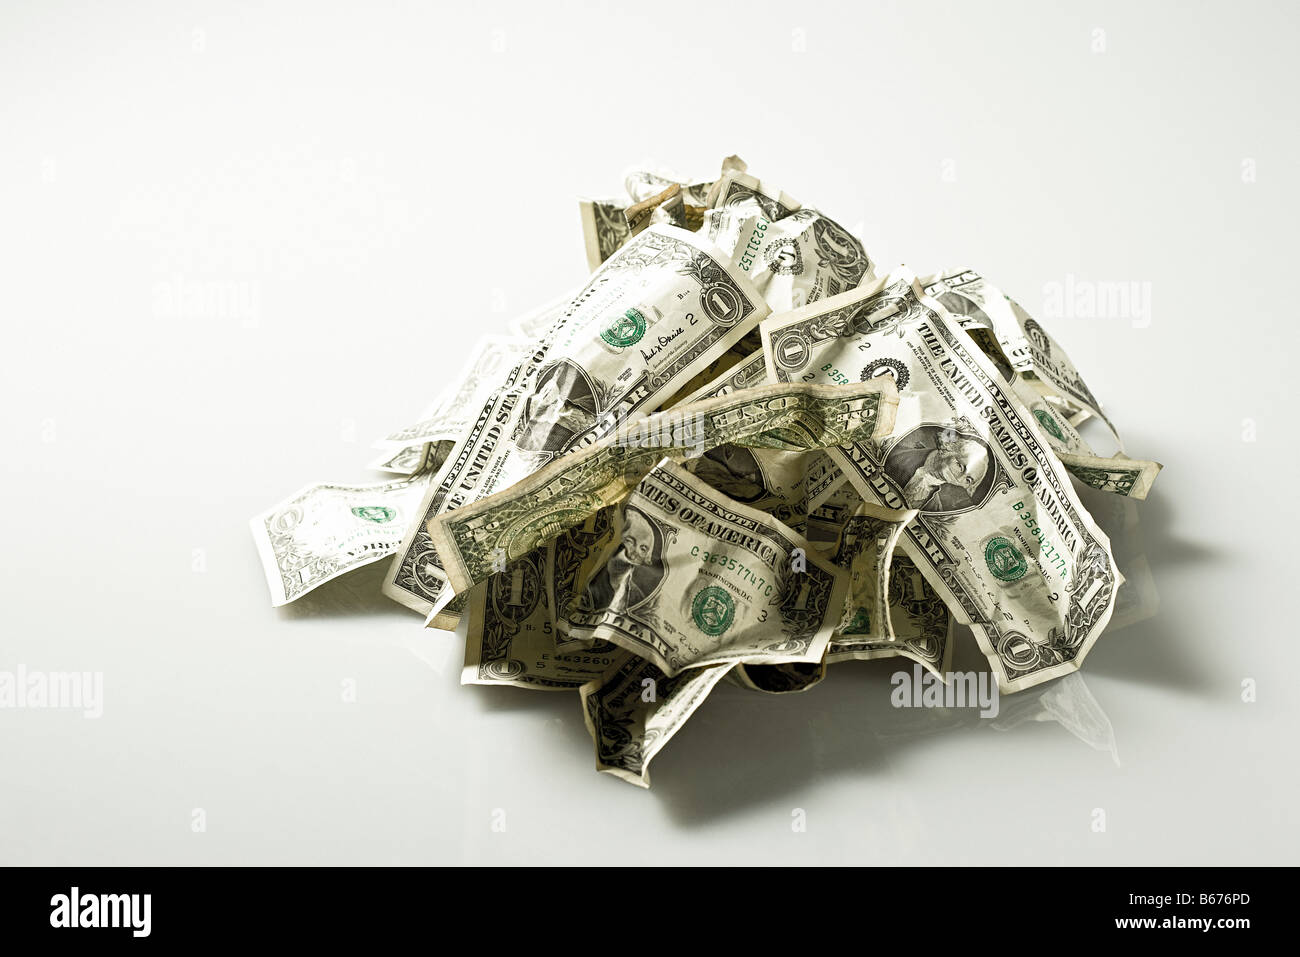 Crumpled banknotes - Stock Image